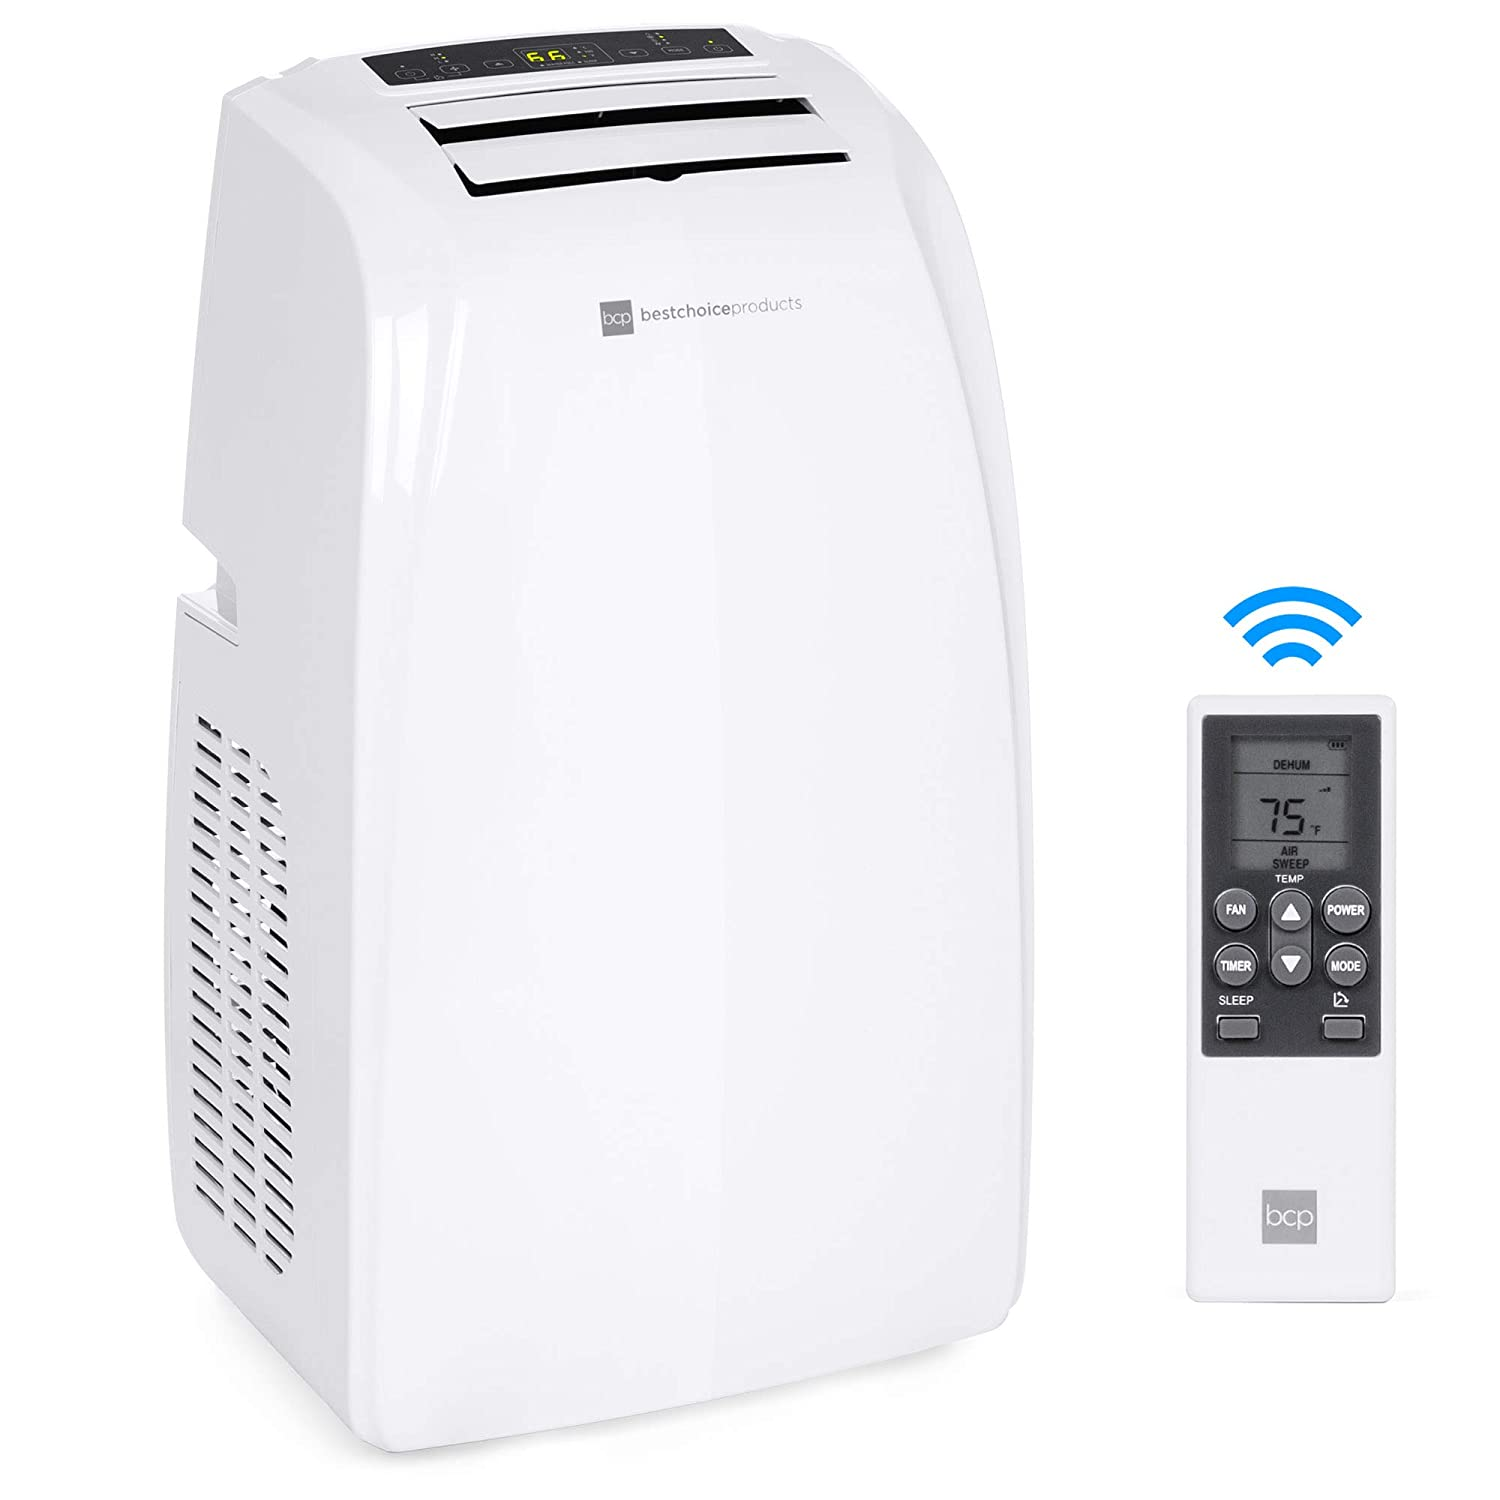 Best Choice Products 14,000 BTU Portable Air Conditioner Cooling and Heating Unit for Up to 650 Sq. Ft w/Remote Control